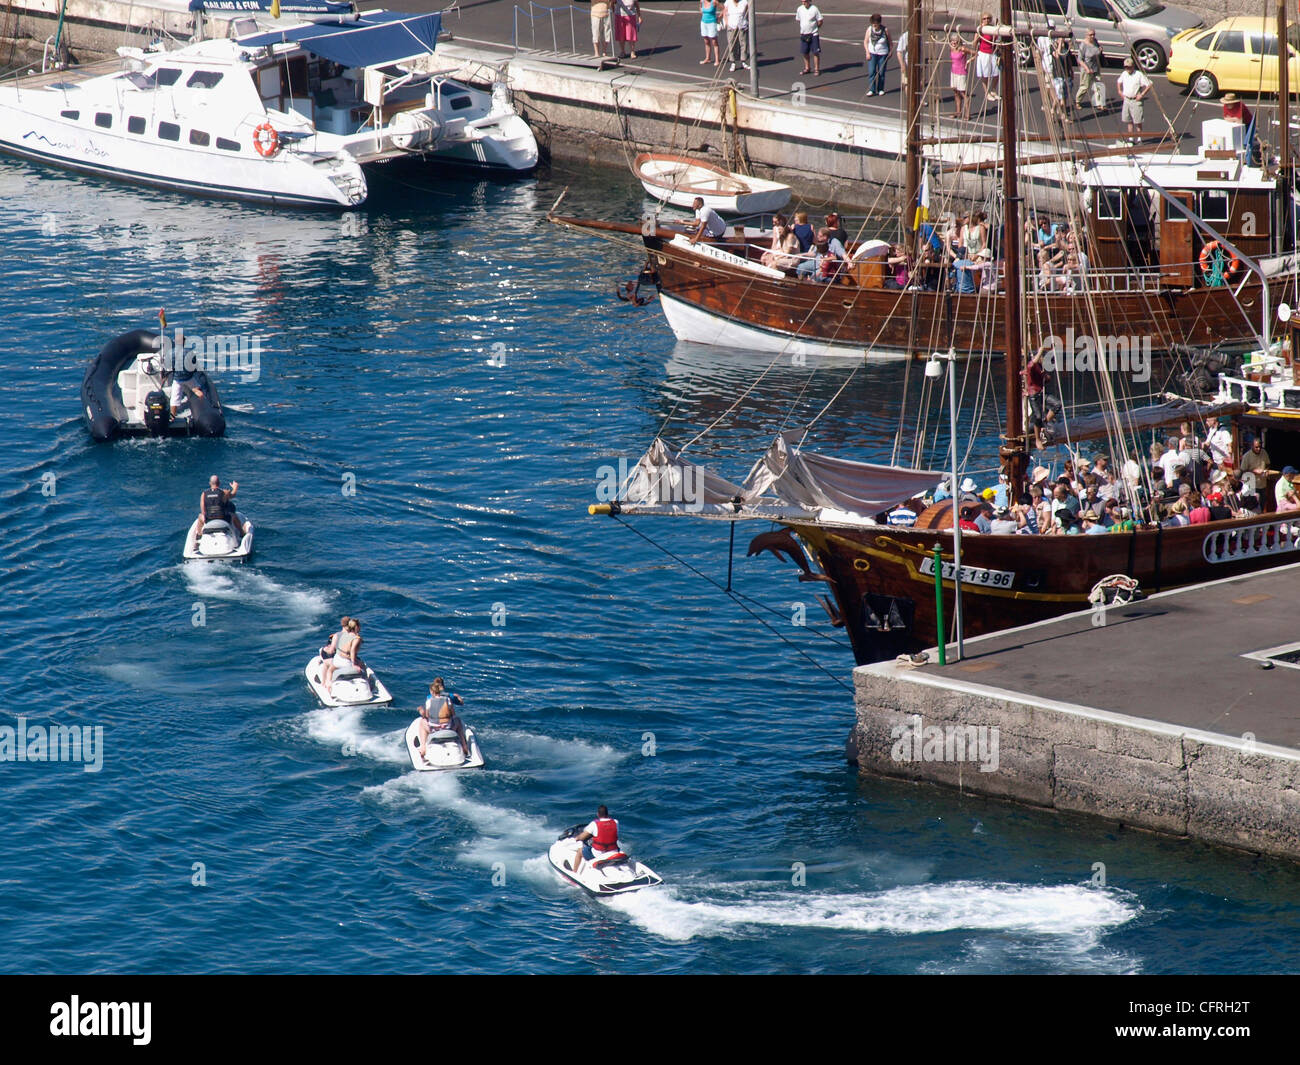 JET SKI SAFARI RETURNING TO LOS GIGANTES HARBOUR AND SEA TENERIFE SPAIN - Stock Image